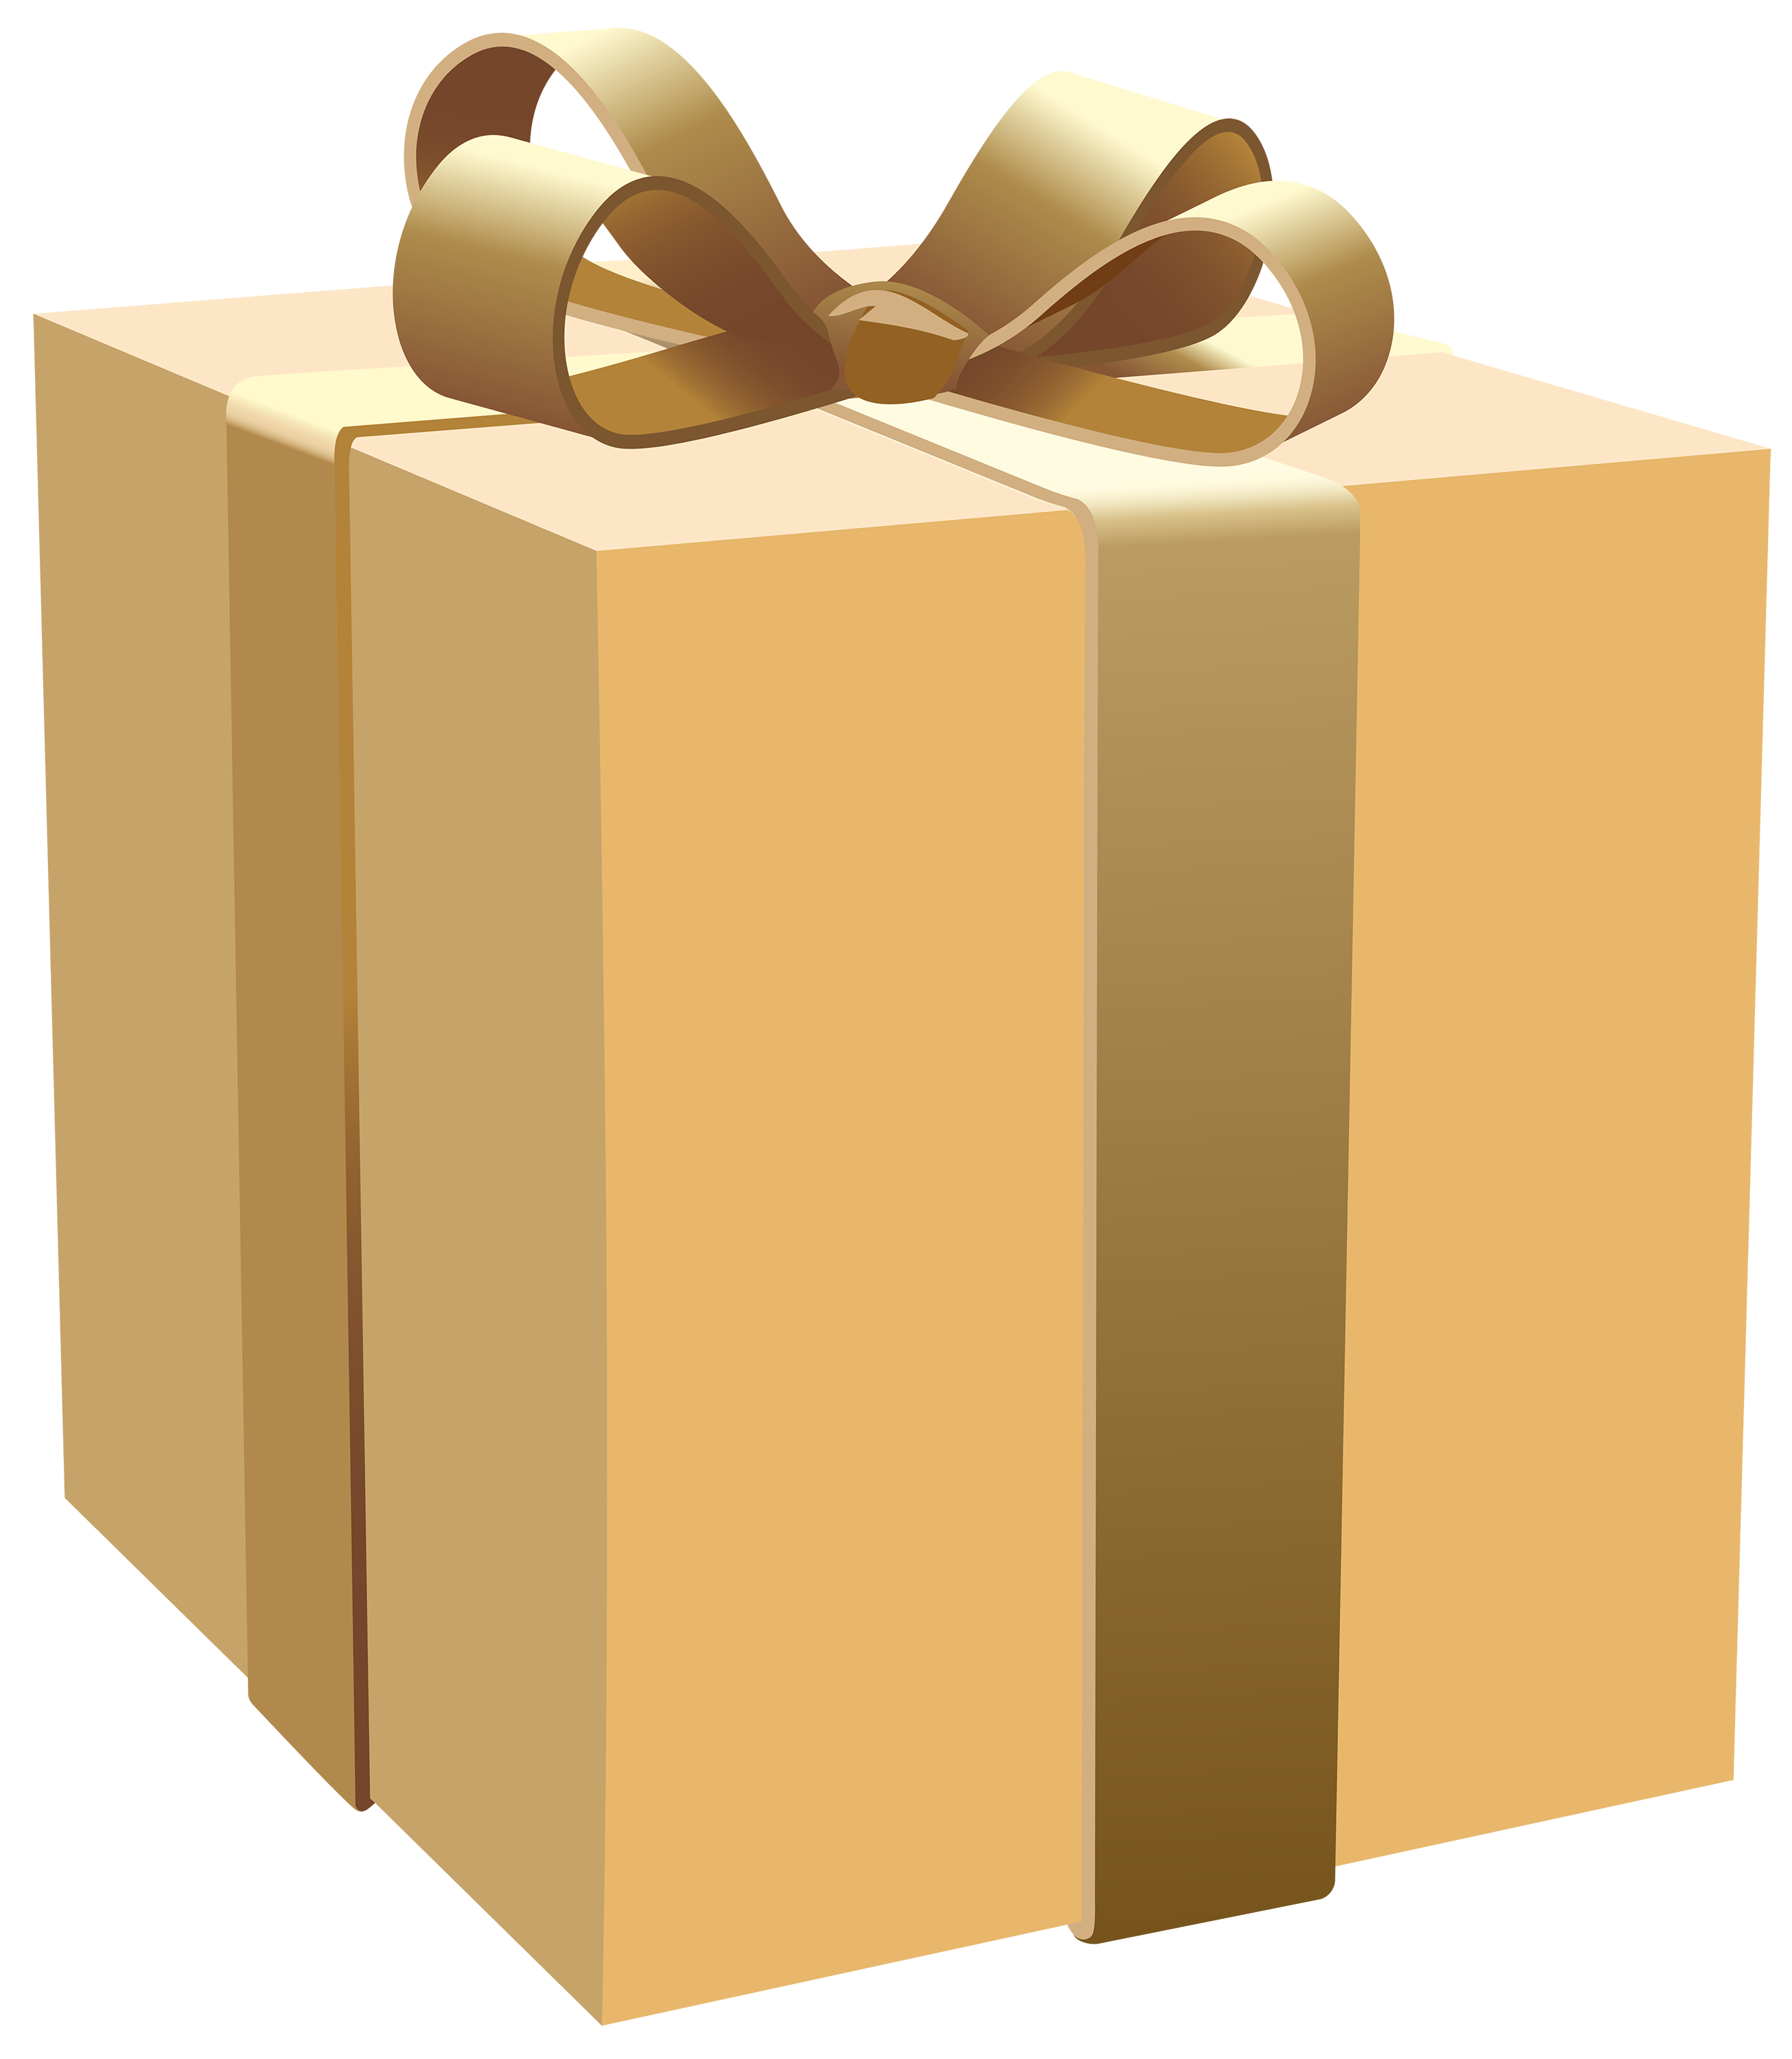 picture library stock Boxes clipart. Phenomenal gift box christmas